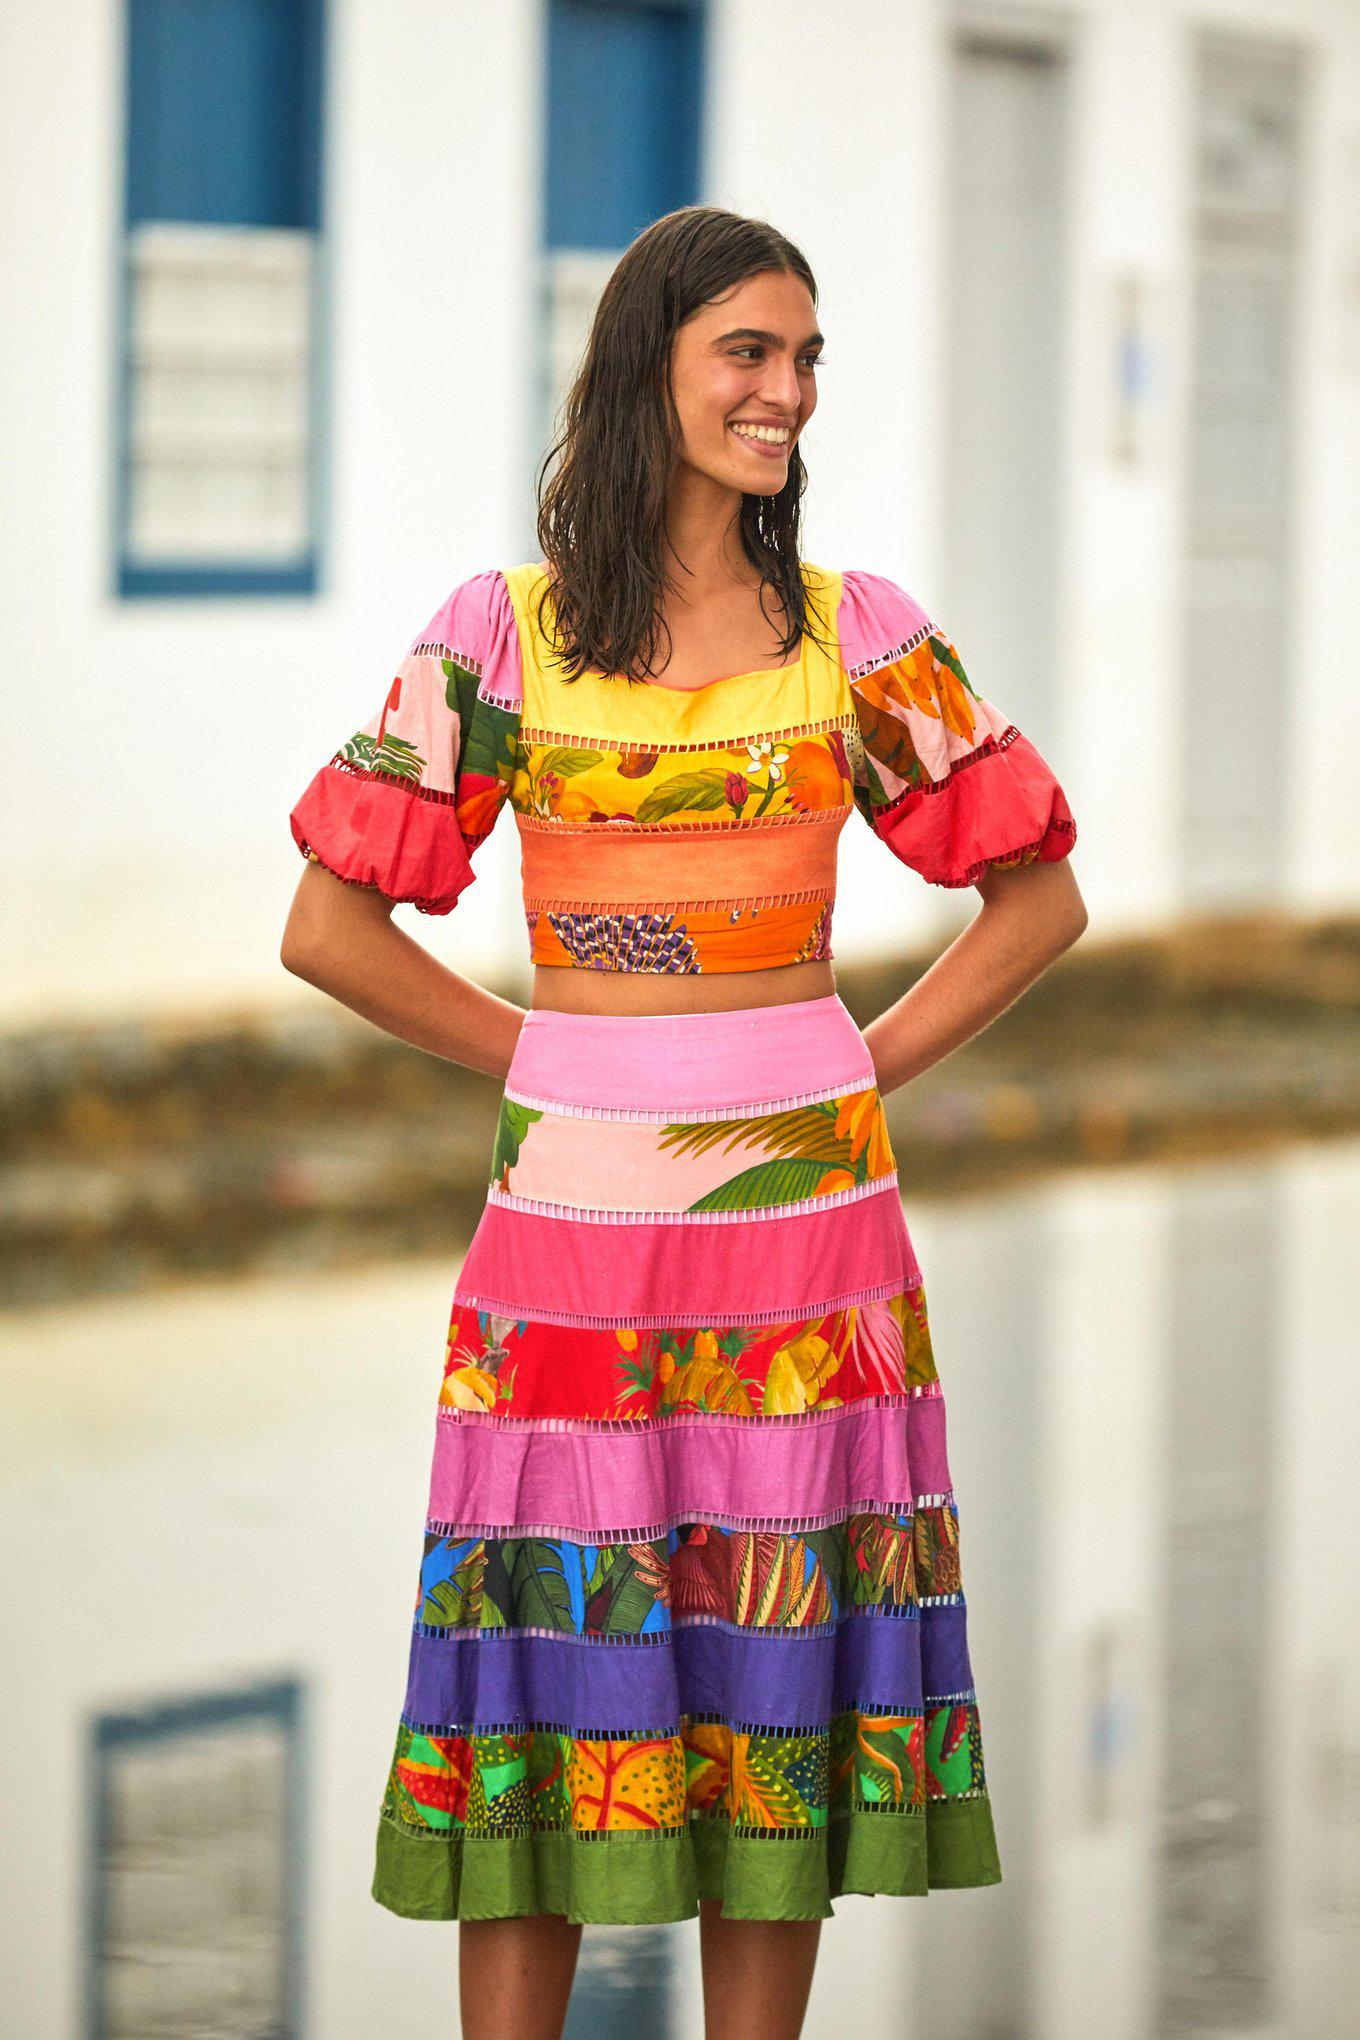 RAINBOW MIXED PRINTS TIERED TOPED TOP